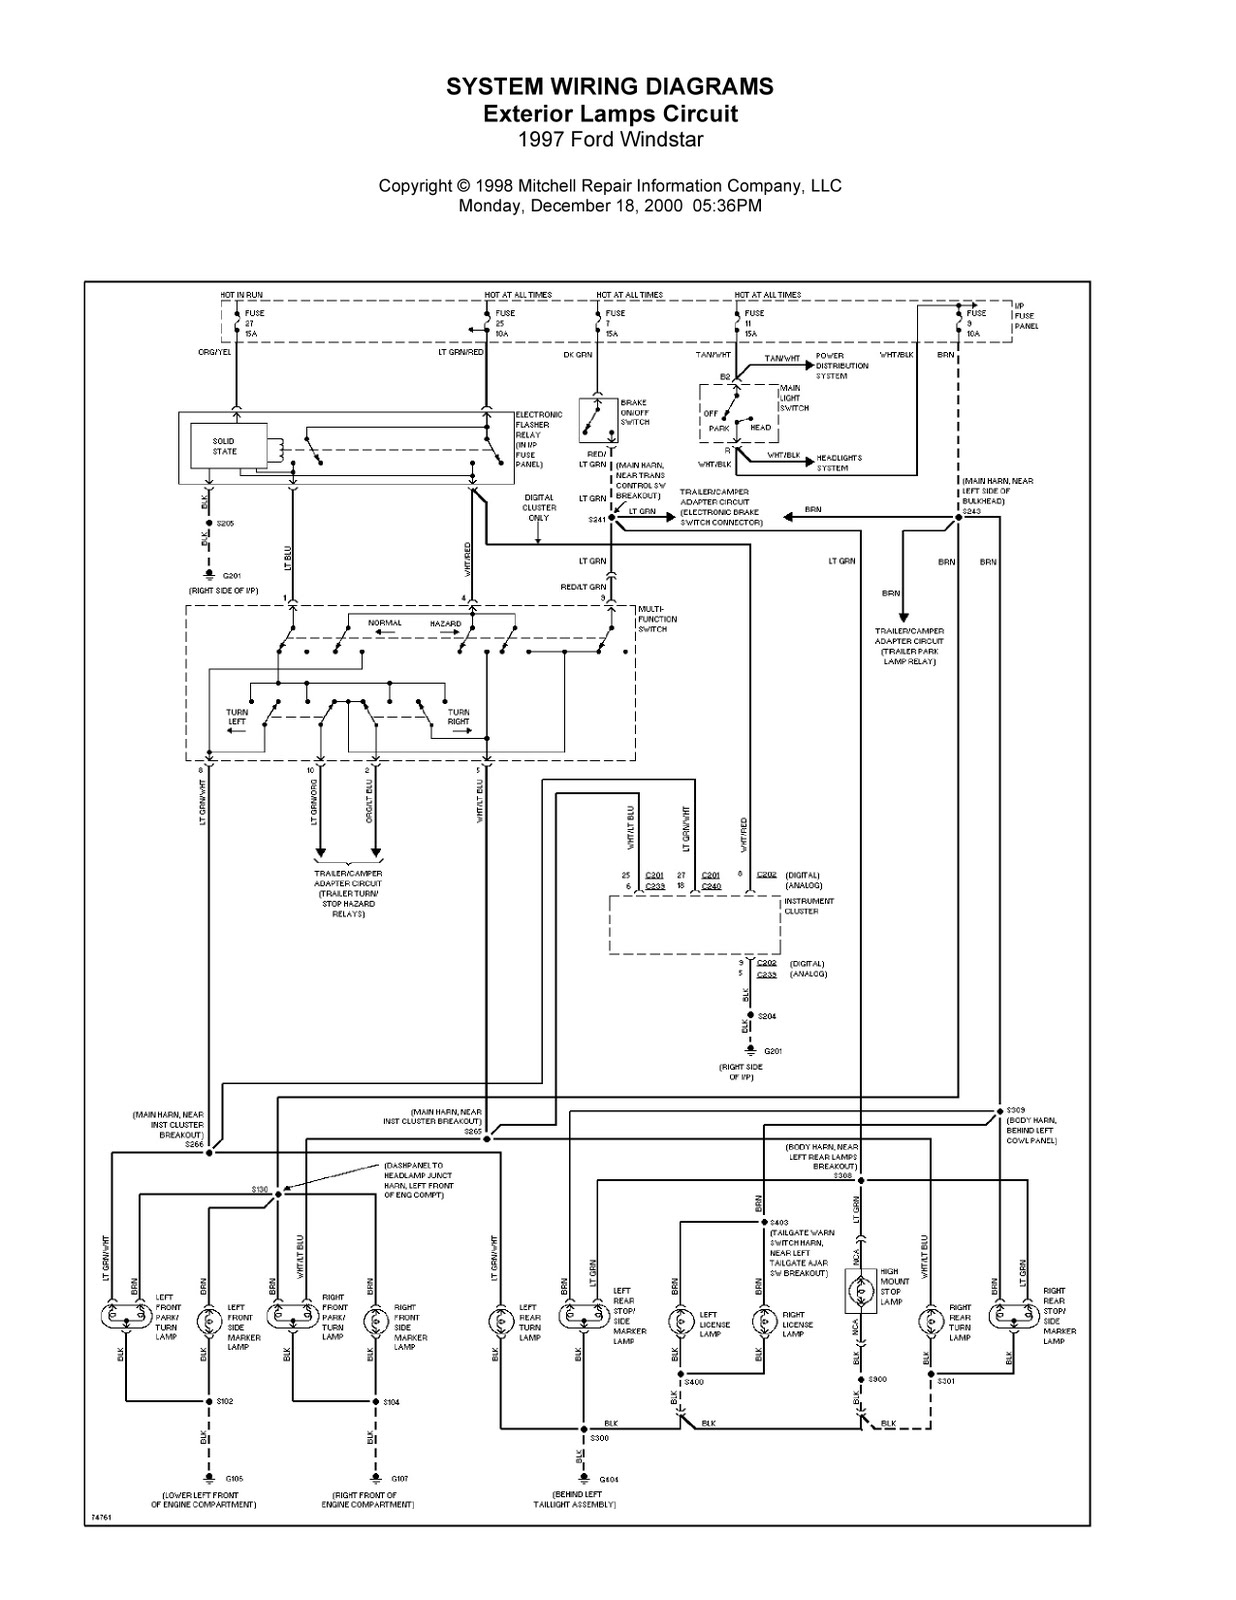 03 Ford Windstar Wiring Diagram